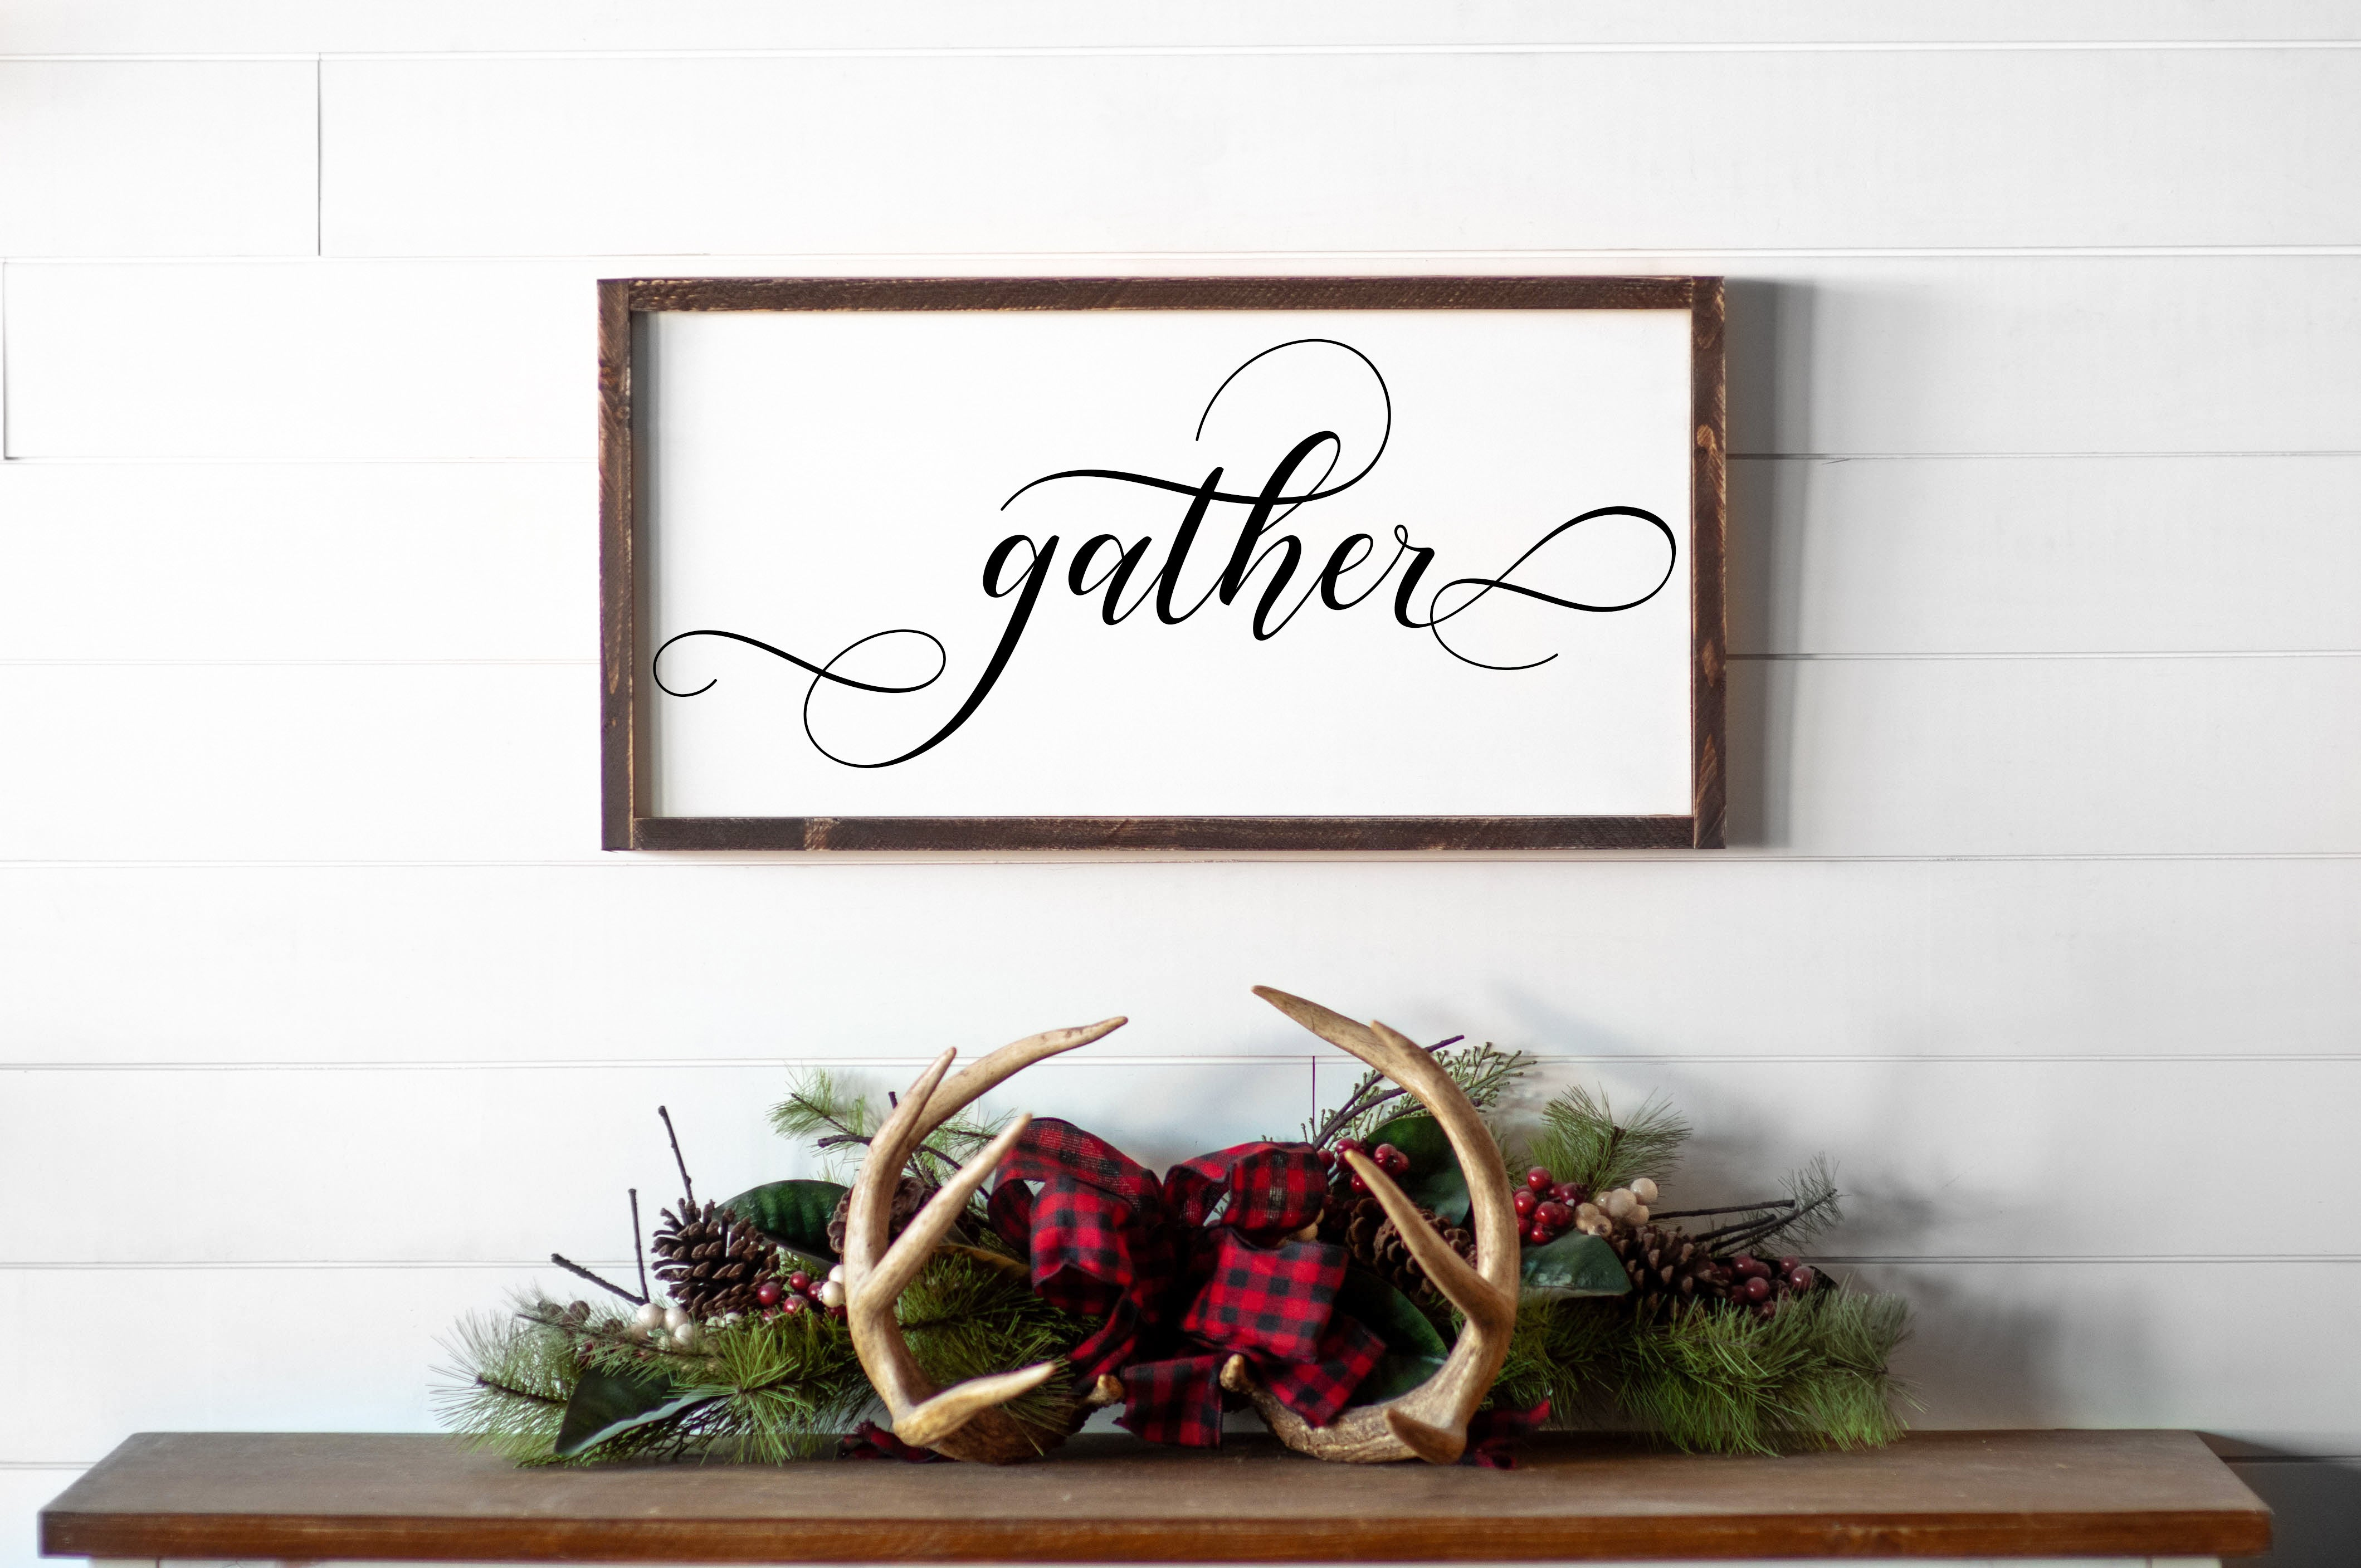 Gather - For Oak Hills Event